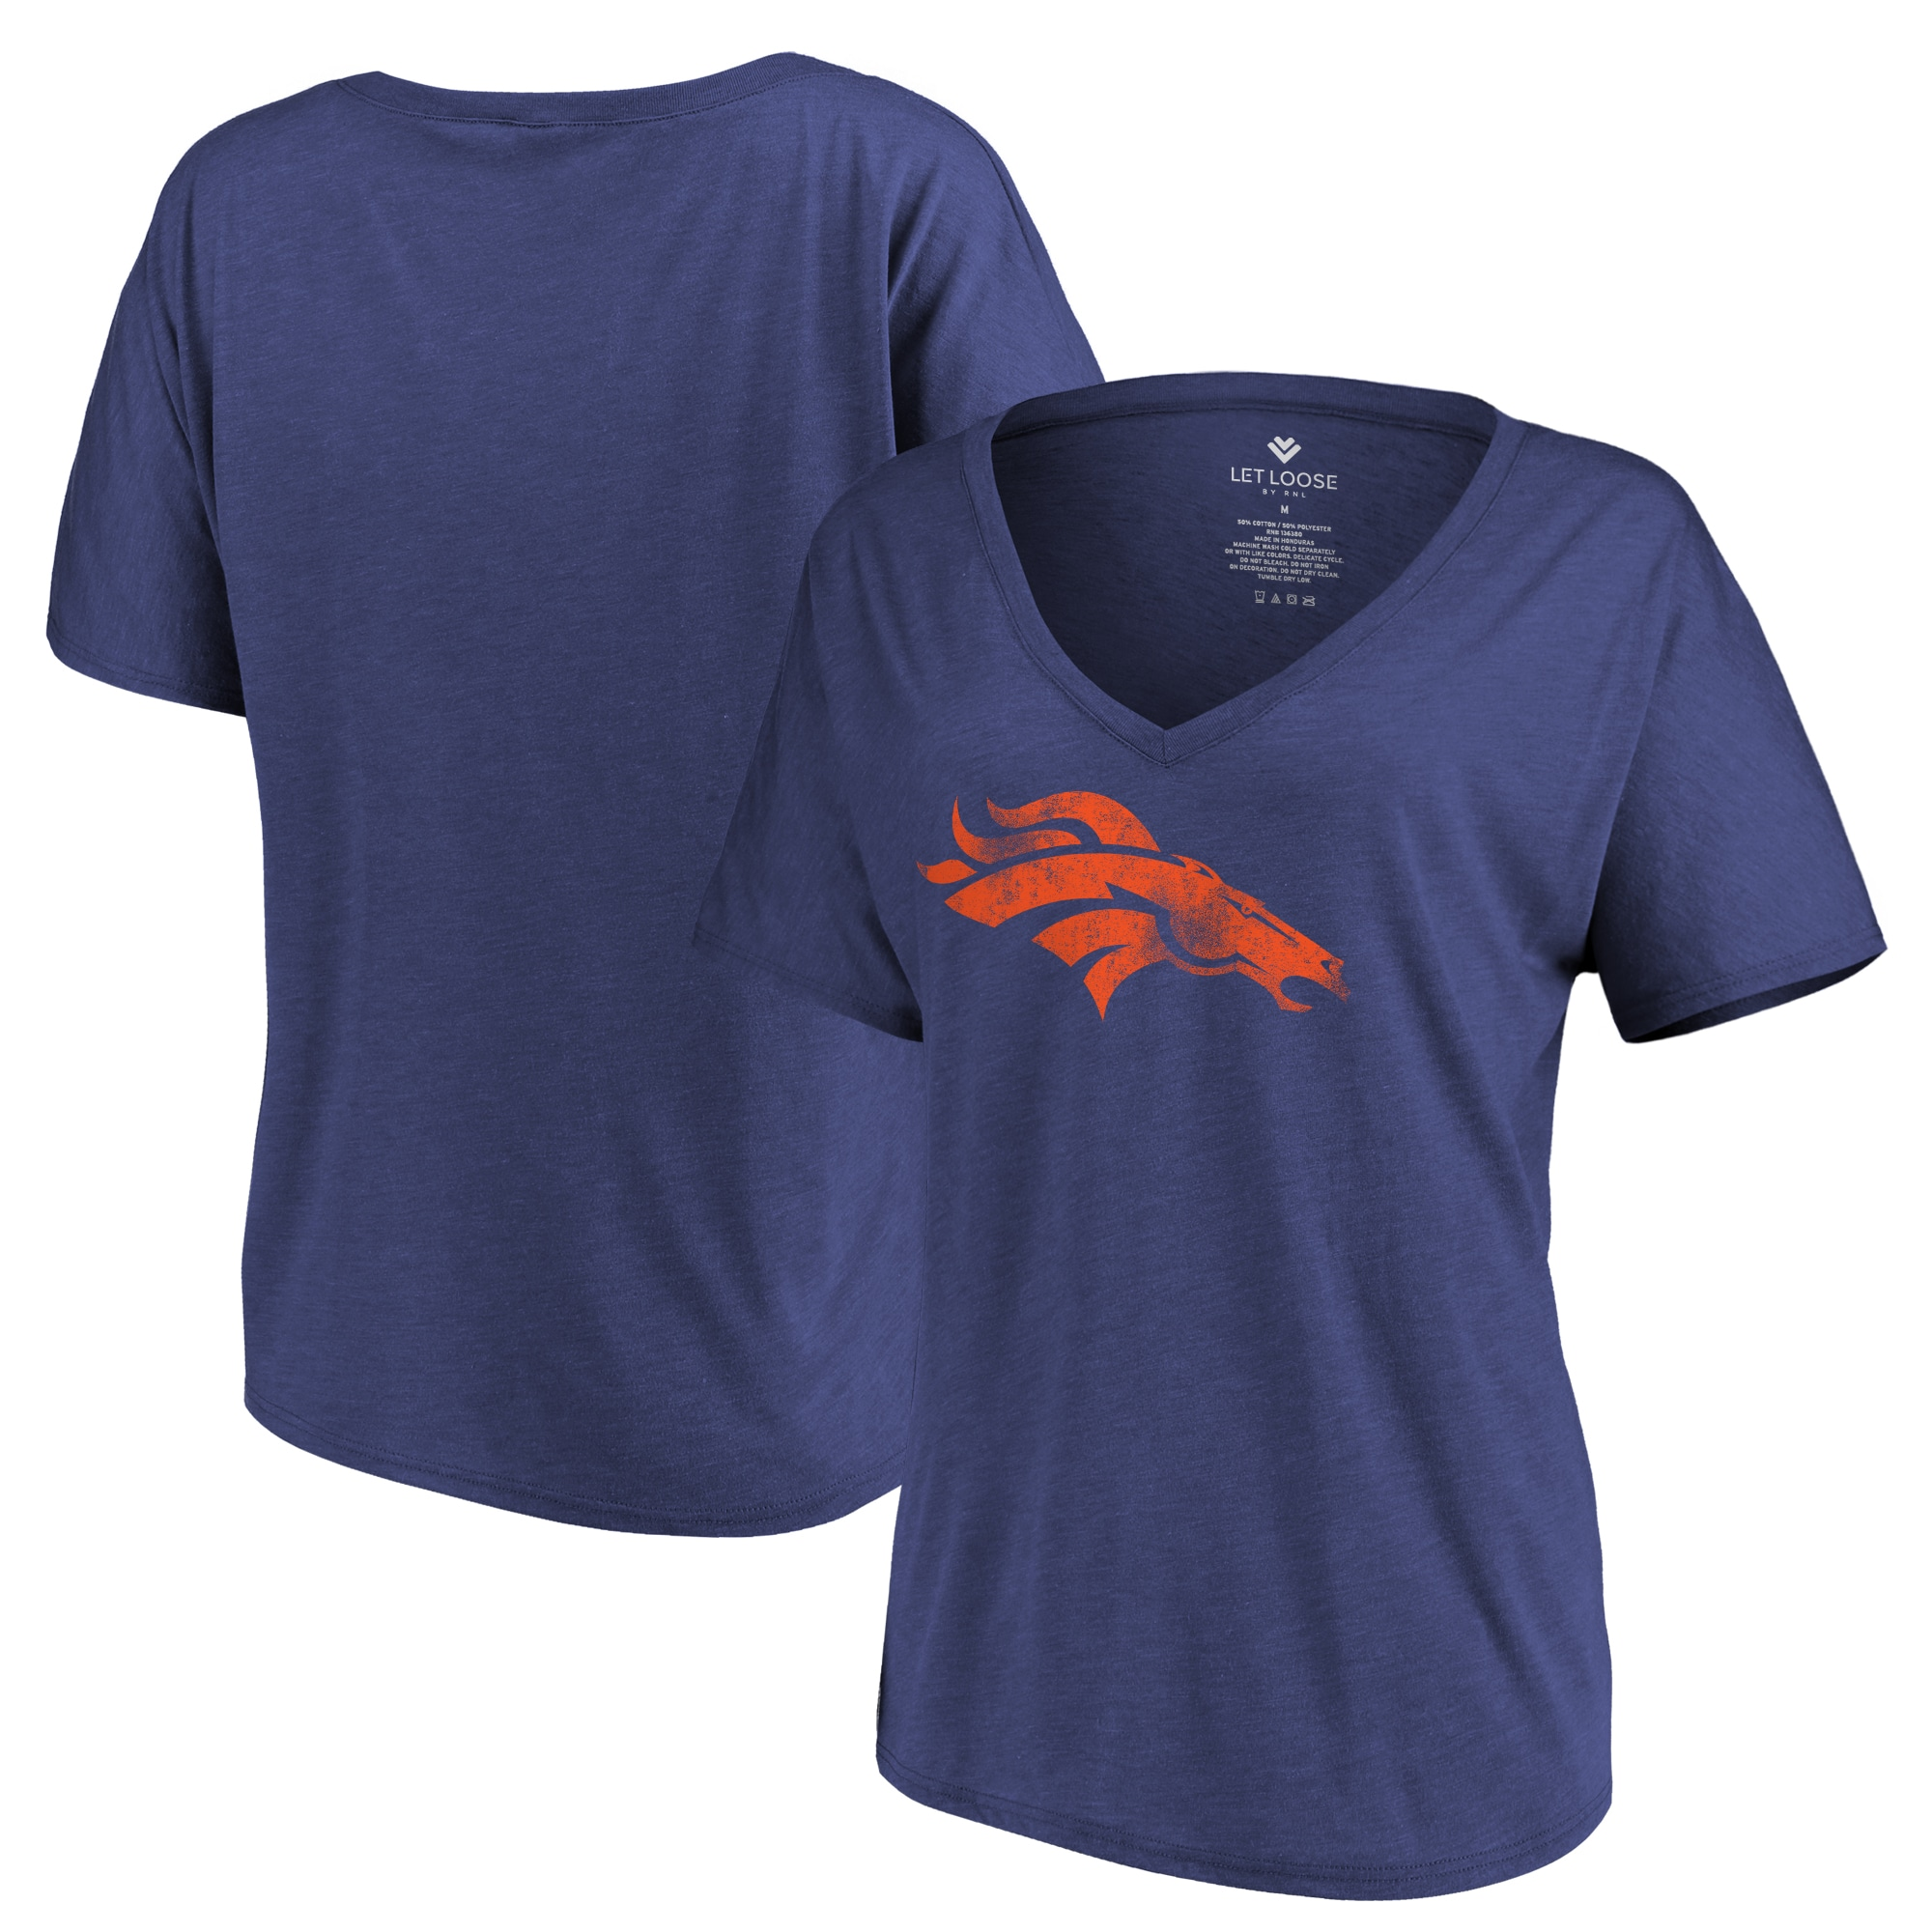 Denver Broncos Let Loose by RNL Women's Distressed Primary V-Neck T-Shirt - Navy